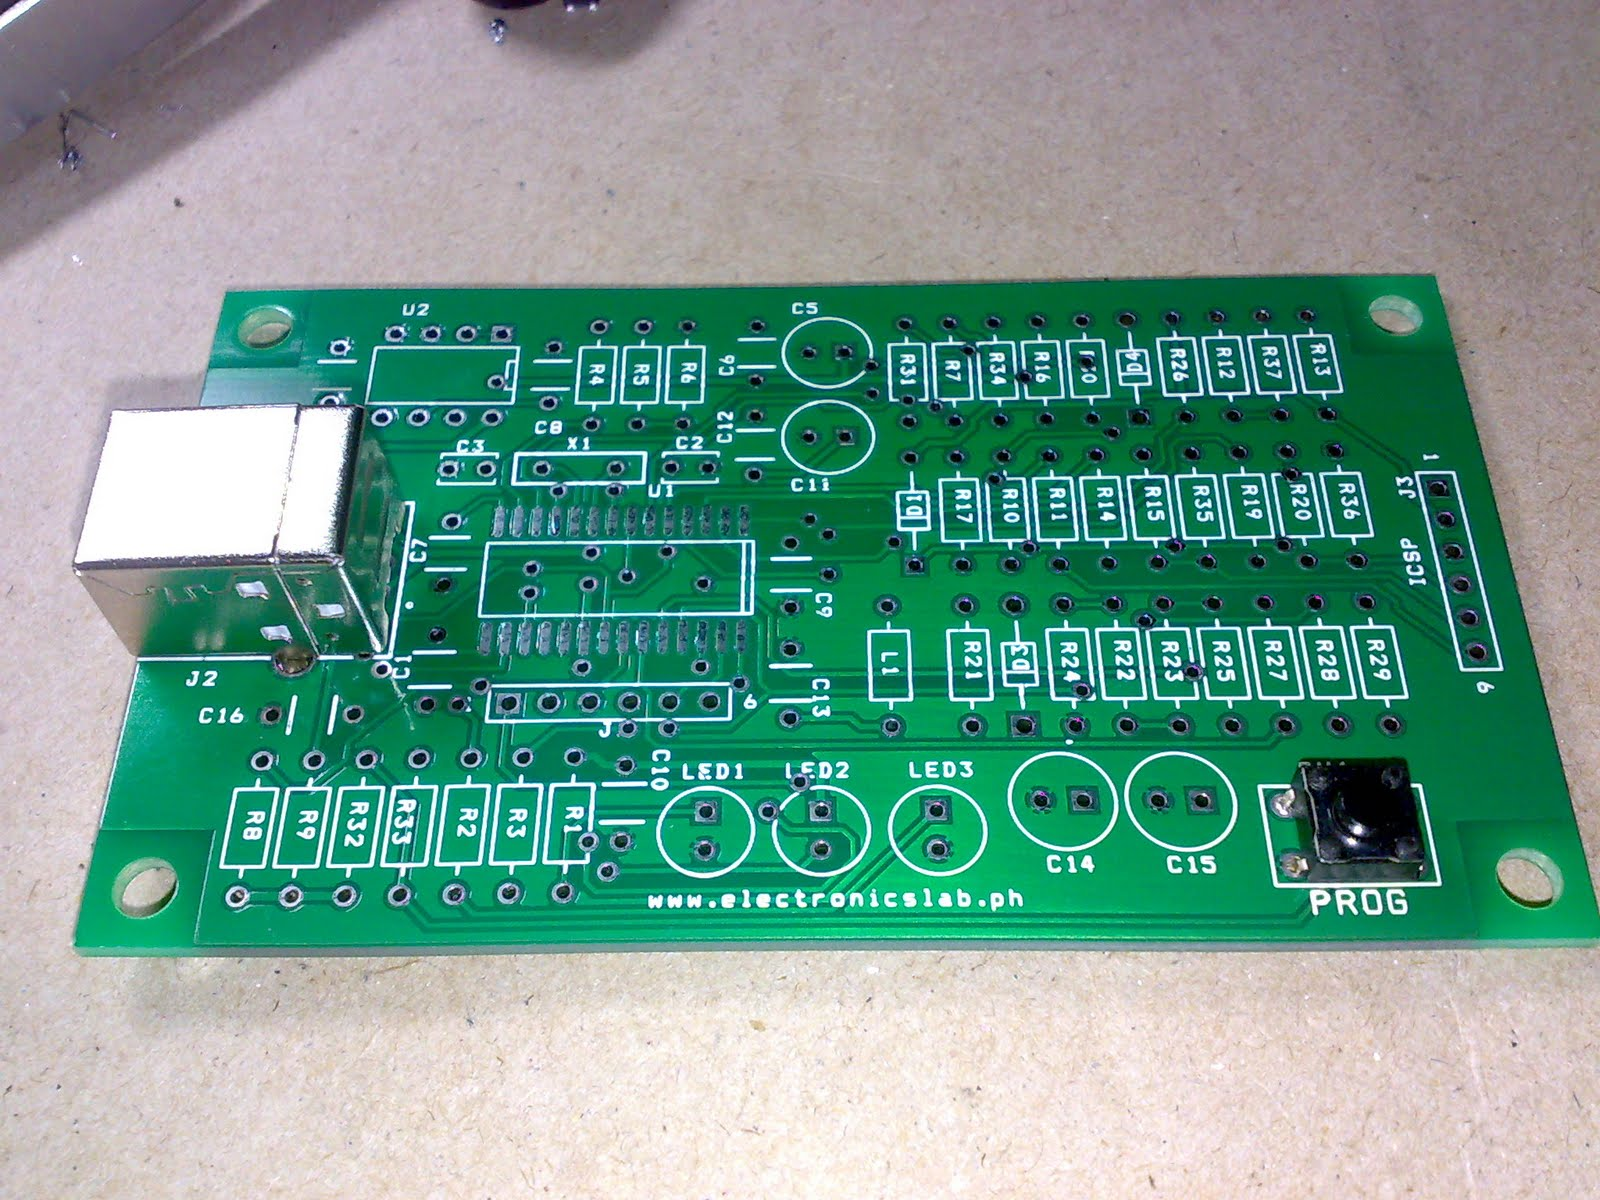 Rbts Tech Depot May 2011 Rf Remote Control With 3 Channels By Pic12f509 Usb And Program Switch Installed